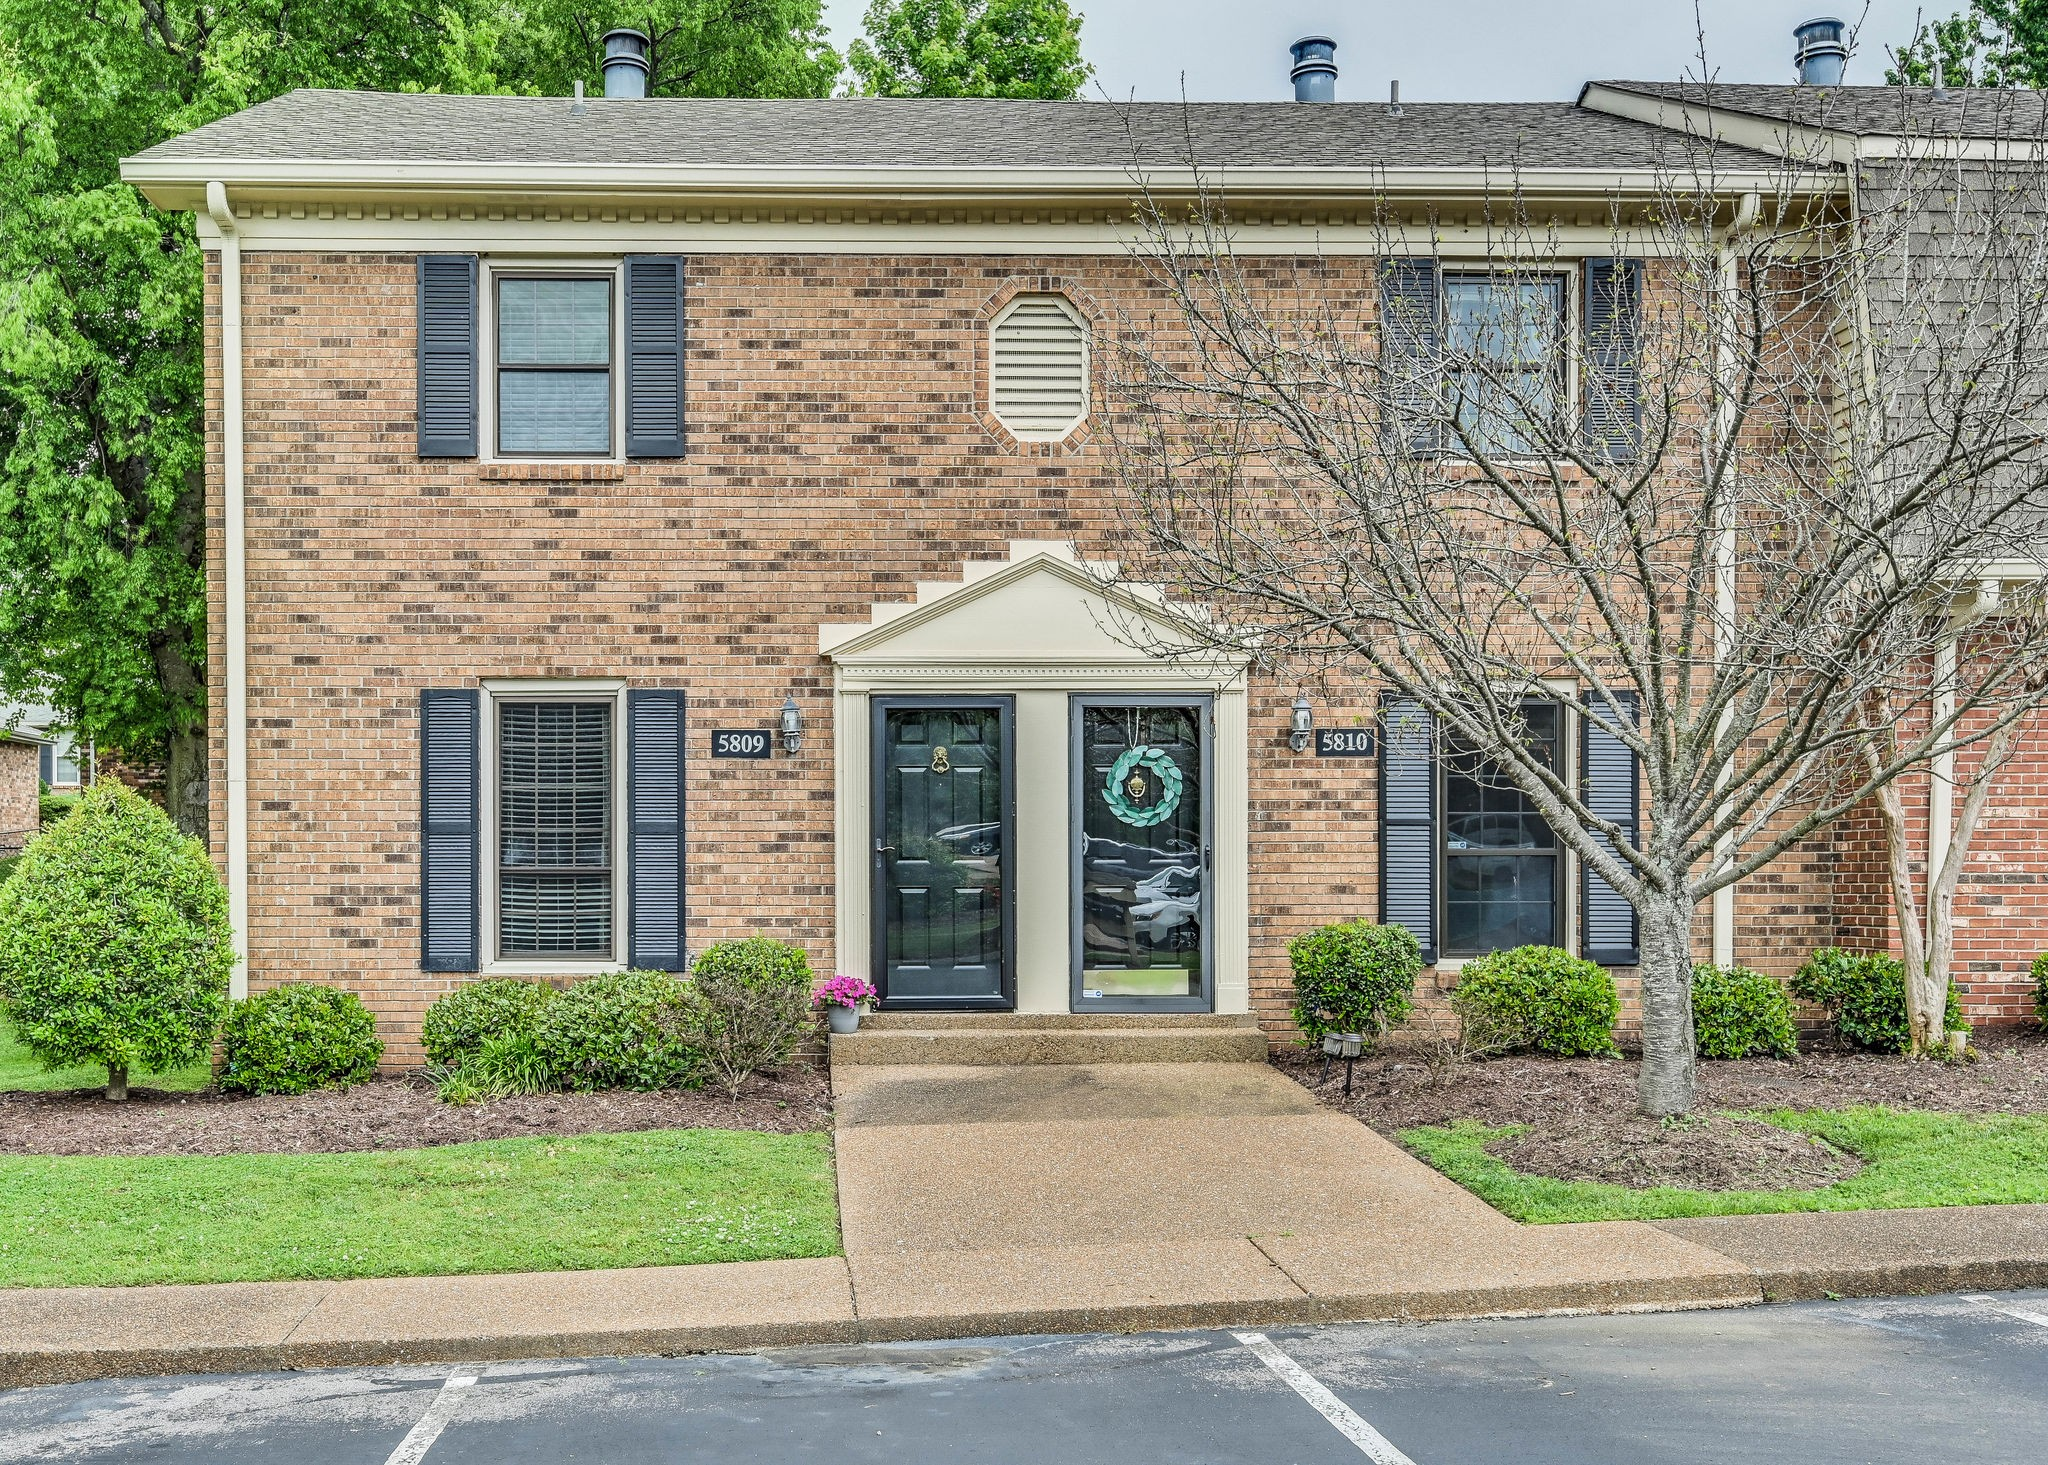 Beautiful Brentwood Trace townhouse...Cool, updated kitchen...Lots of fresh paint on the interior...Backs into residential area...Impeccable and ready for new owner!